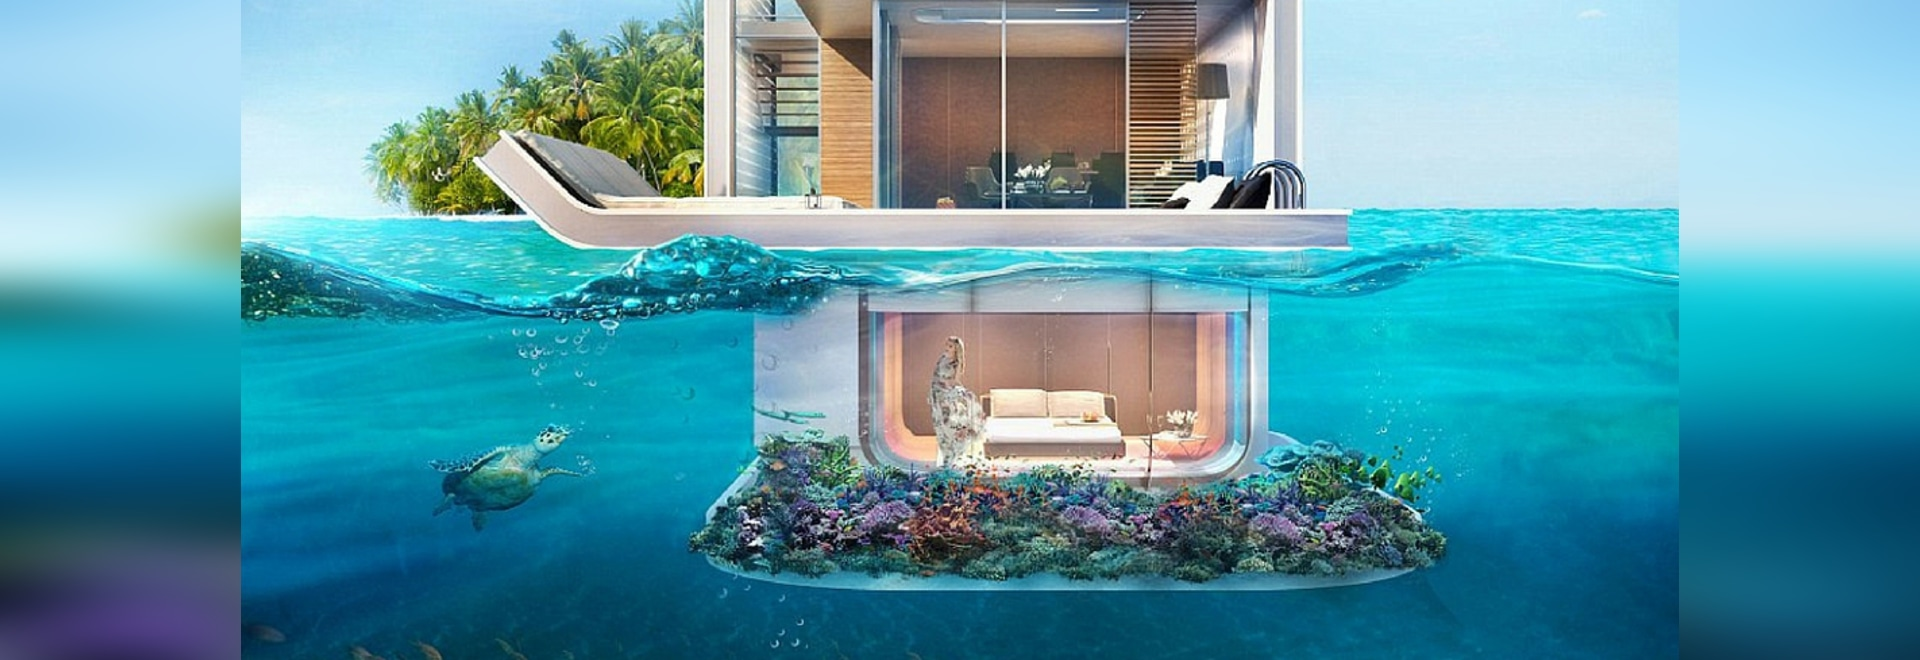 THE FLOATING SEAHORSE VILLAS